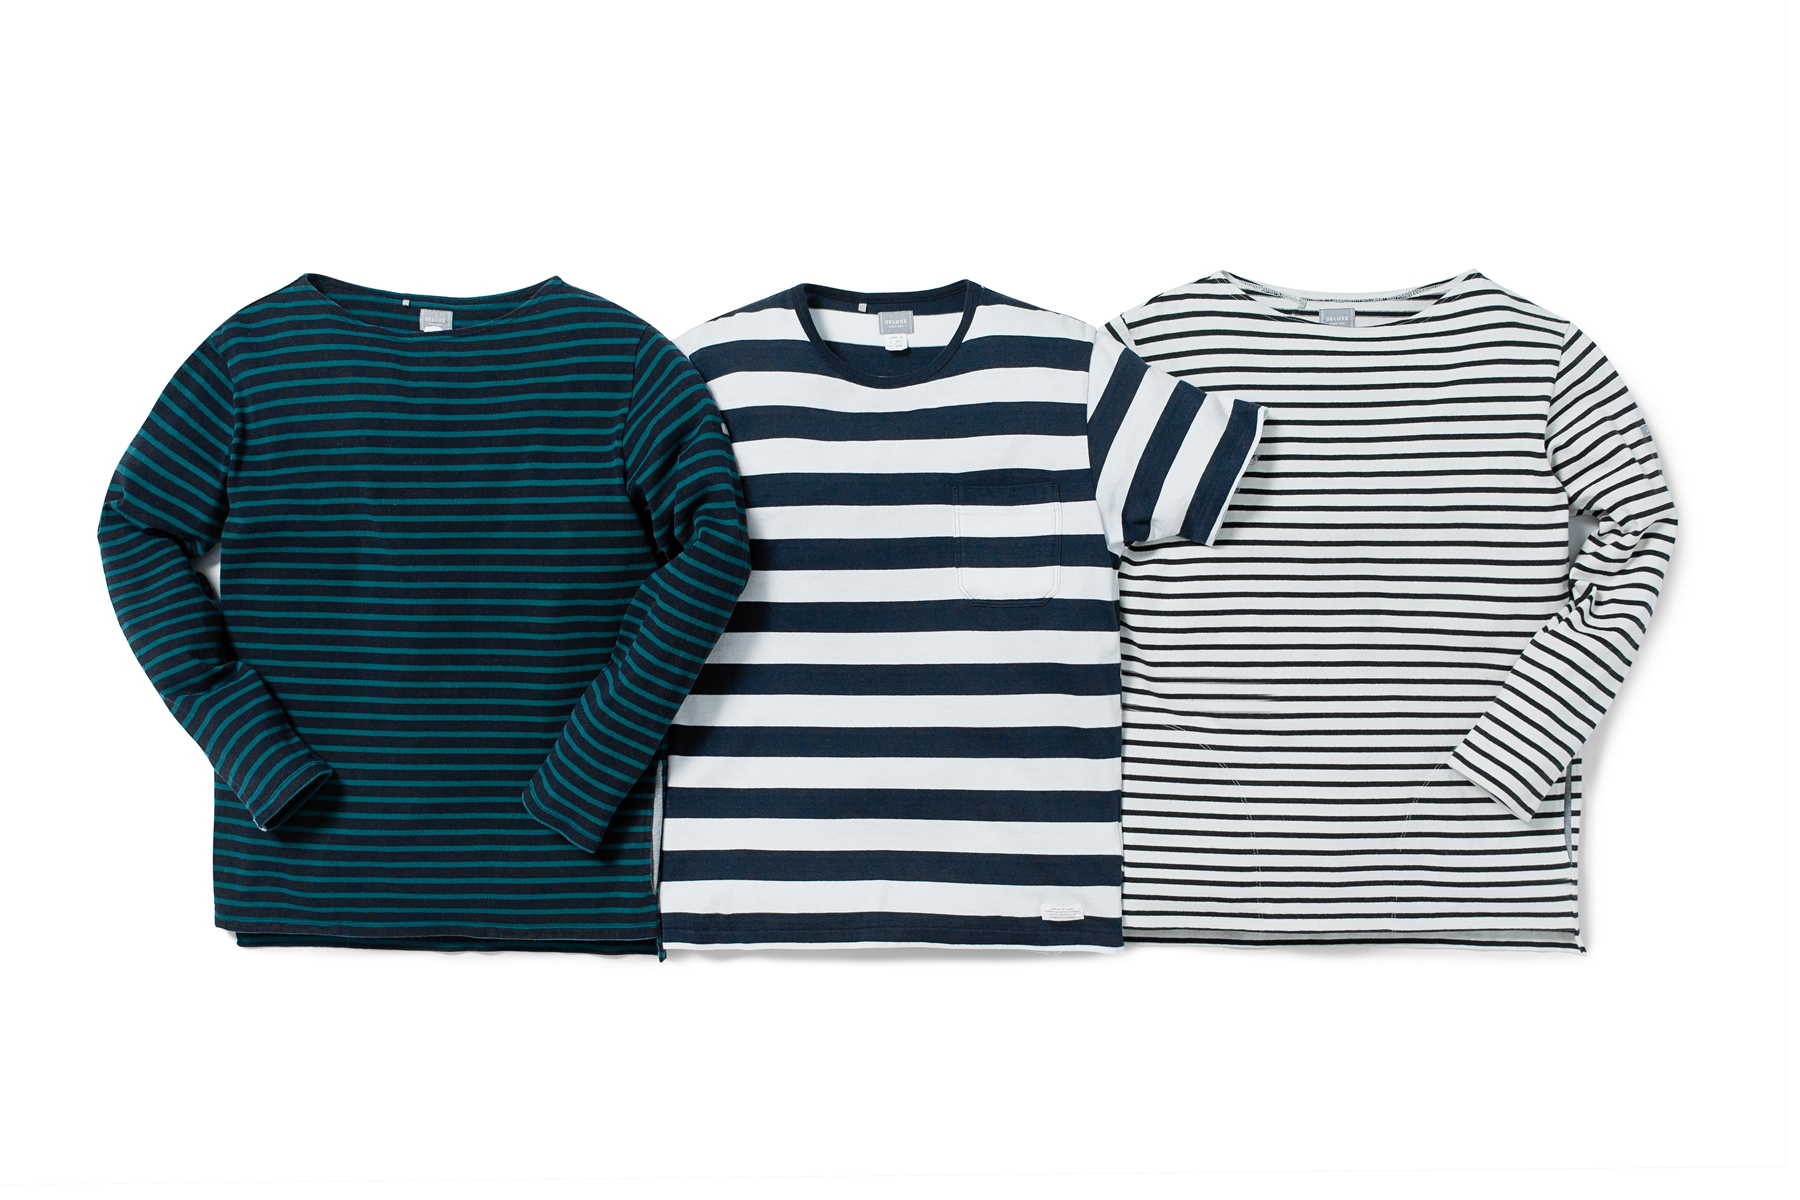 Deluxe 2015 Spring/Summer New Arrivals